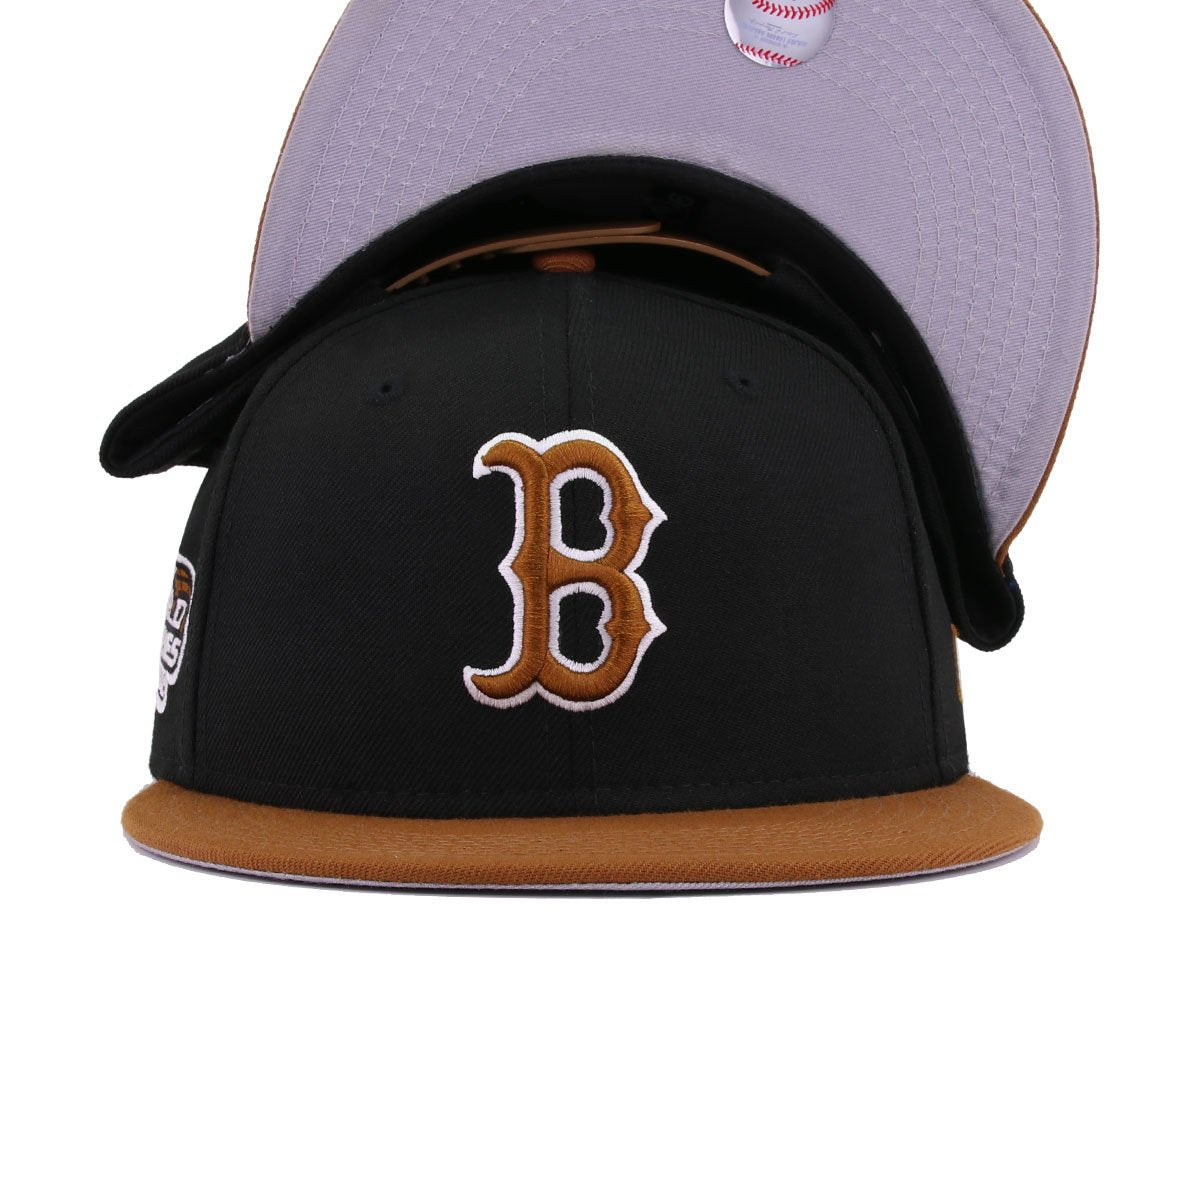 Boston Red Sox Black Toasted Peanut 2004 World Series New Era 9Fifty Snapback